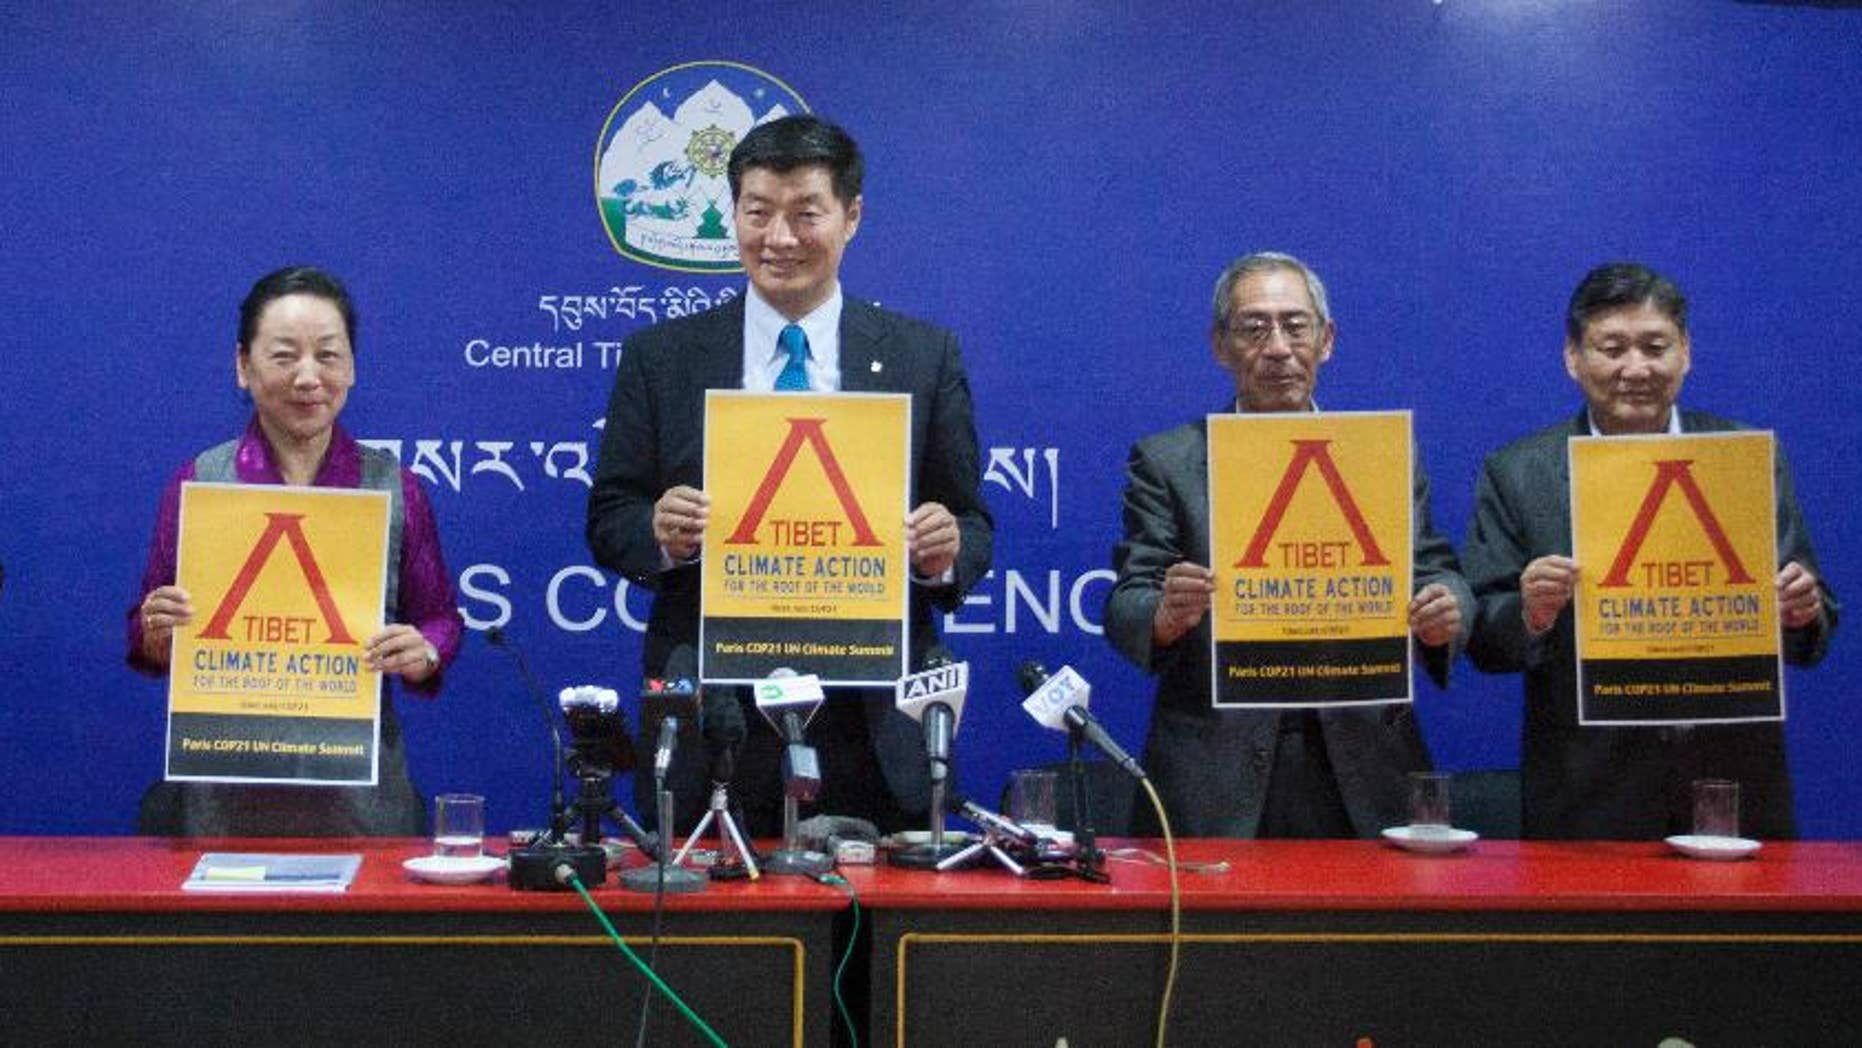 Prime minister of the Tibetan government in exile, Lobsang Sangay, center flanked by government officials unveils the Tibet Climate Action poster during the launch of a campaign in Dharamsala, India, Tuesday, Oct. 20, 2015. The Dalai Lama on Tuesday urged the world's nations to take strong action to limit global warming and to protect fragile environments including the Himalayan glaciers and Tibetan plateau.(AP Photo/Shailesh Bhatnagar)